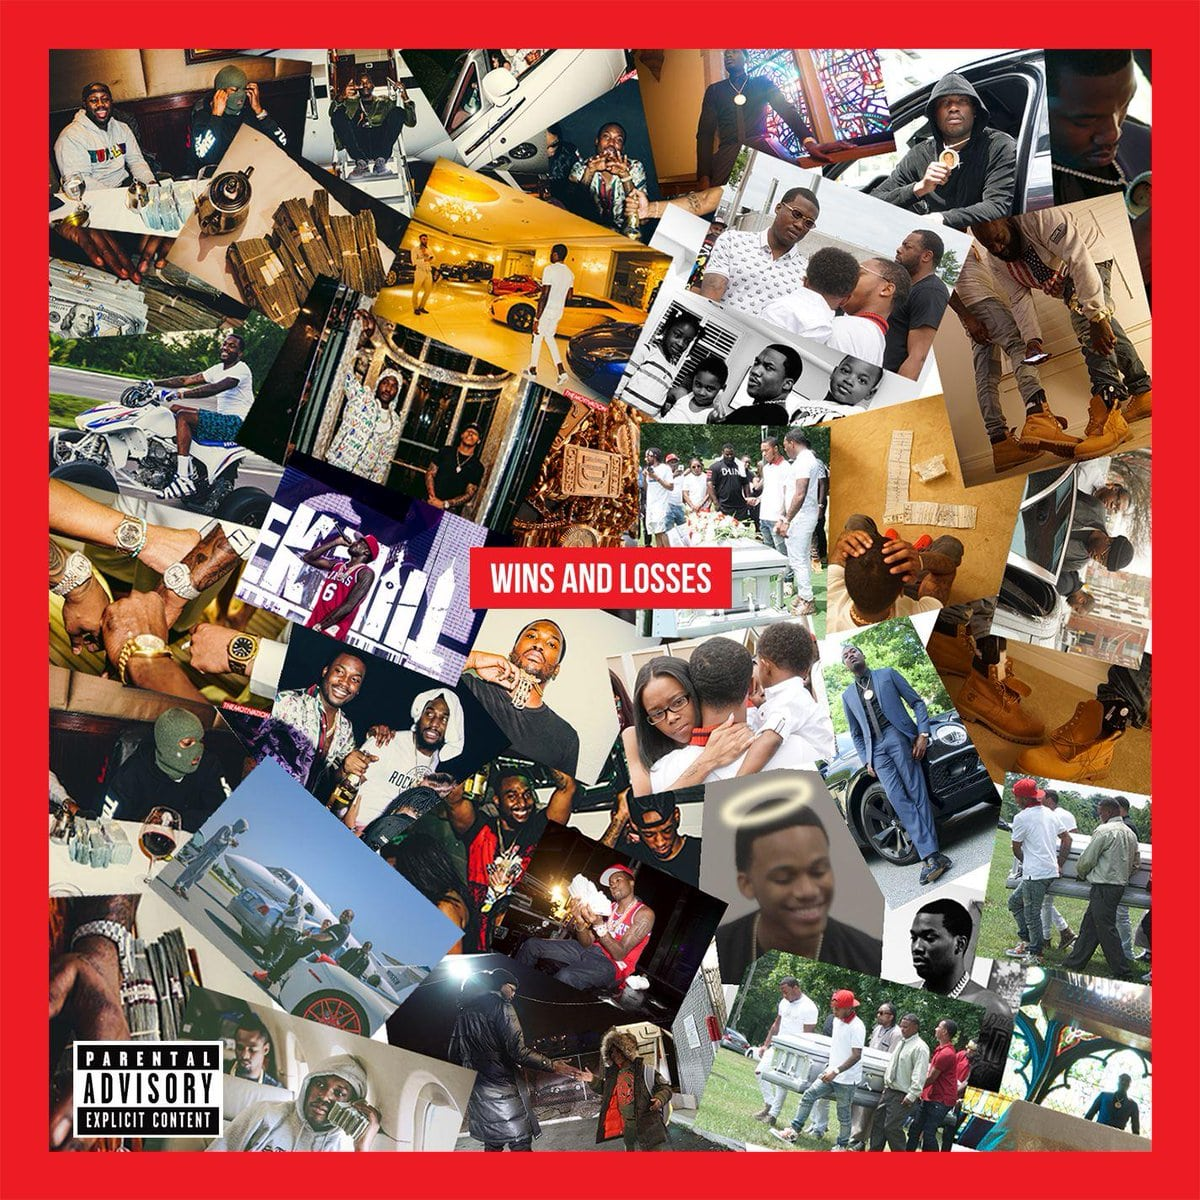 Listen to Meek Mill's new album 'Wins & Losses.' https://t.co/PhgYLGoquQ